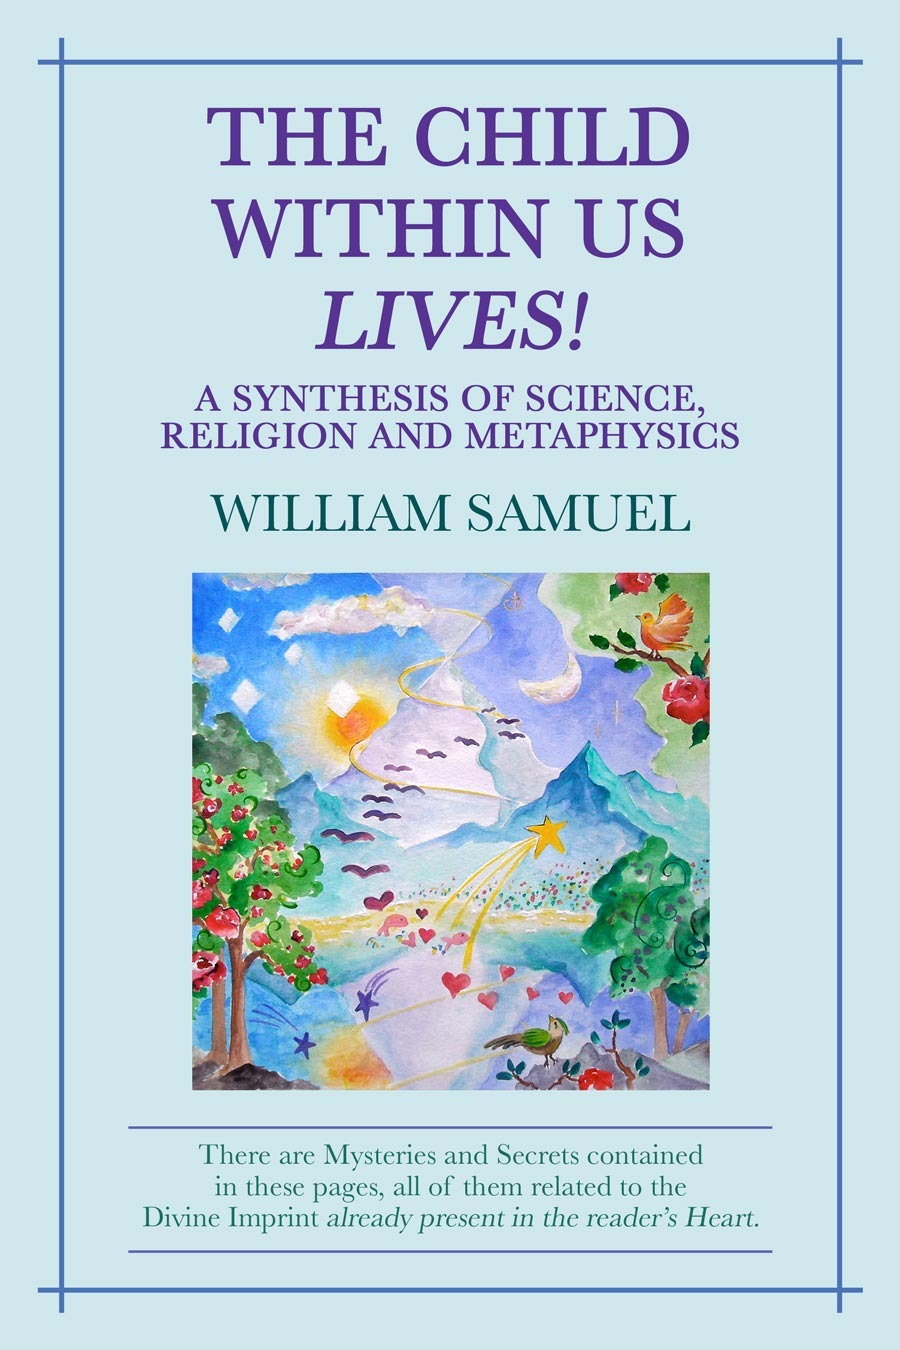 The Child Within Us Lives! A Synthesis of Science, Religion and Metaphysics by William Samuel